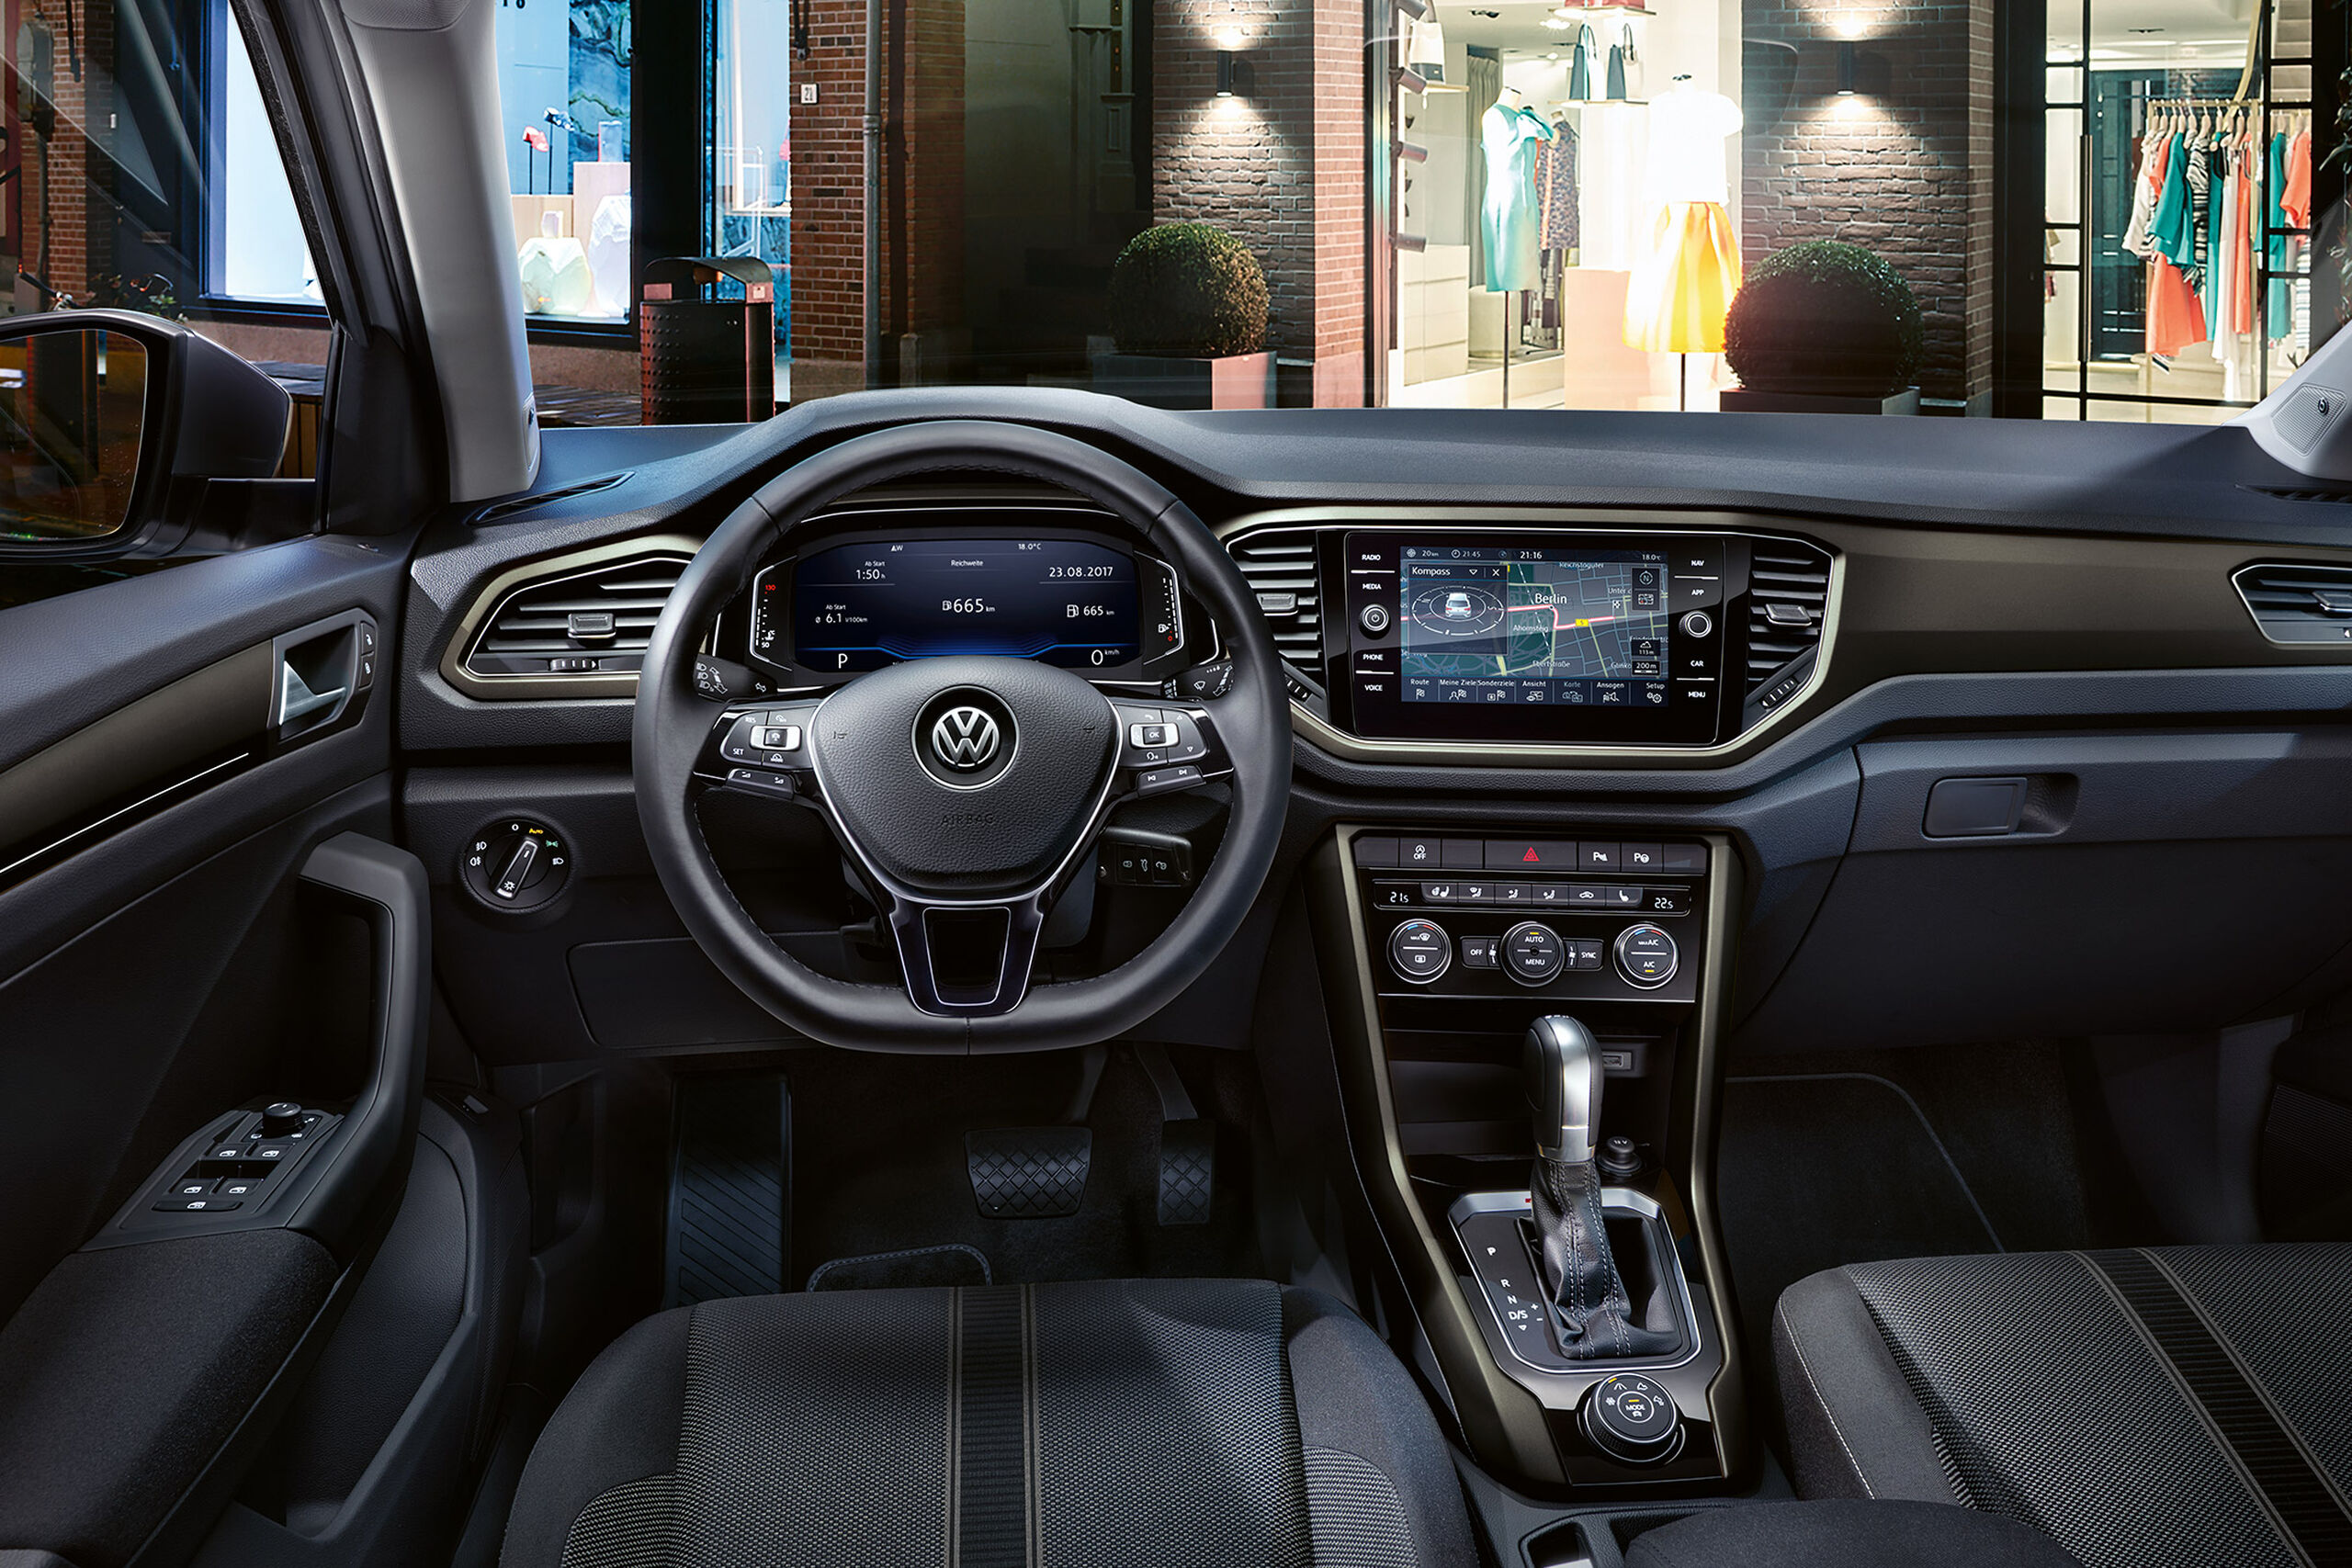 vw volkswagen t-roc maro design interior